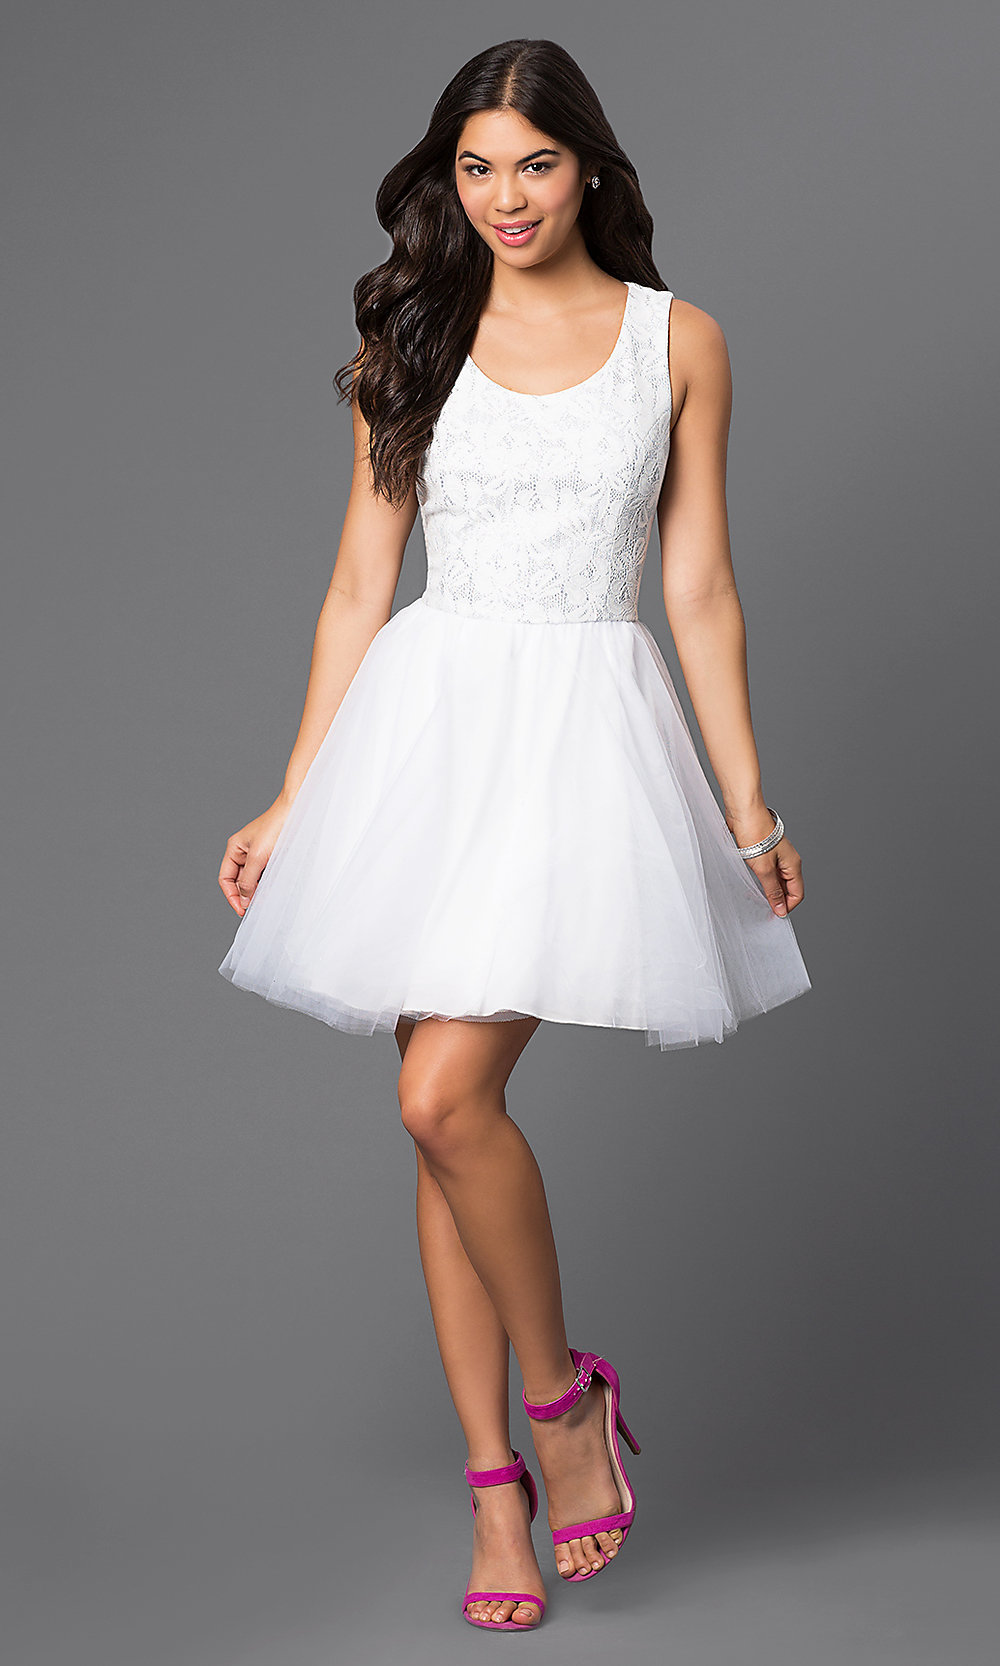 Short White Lace-Top Party Dress - PromGirl